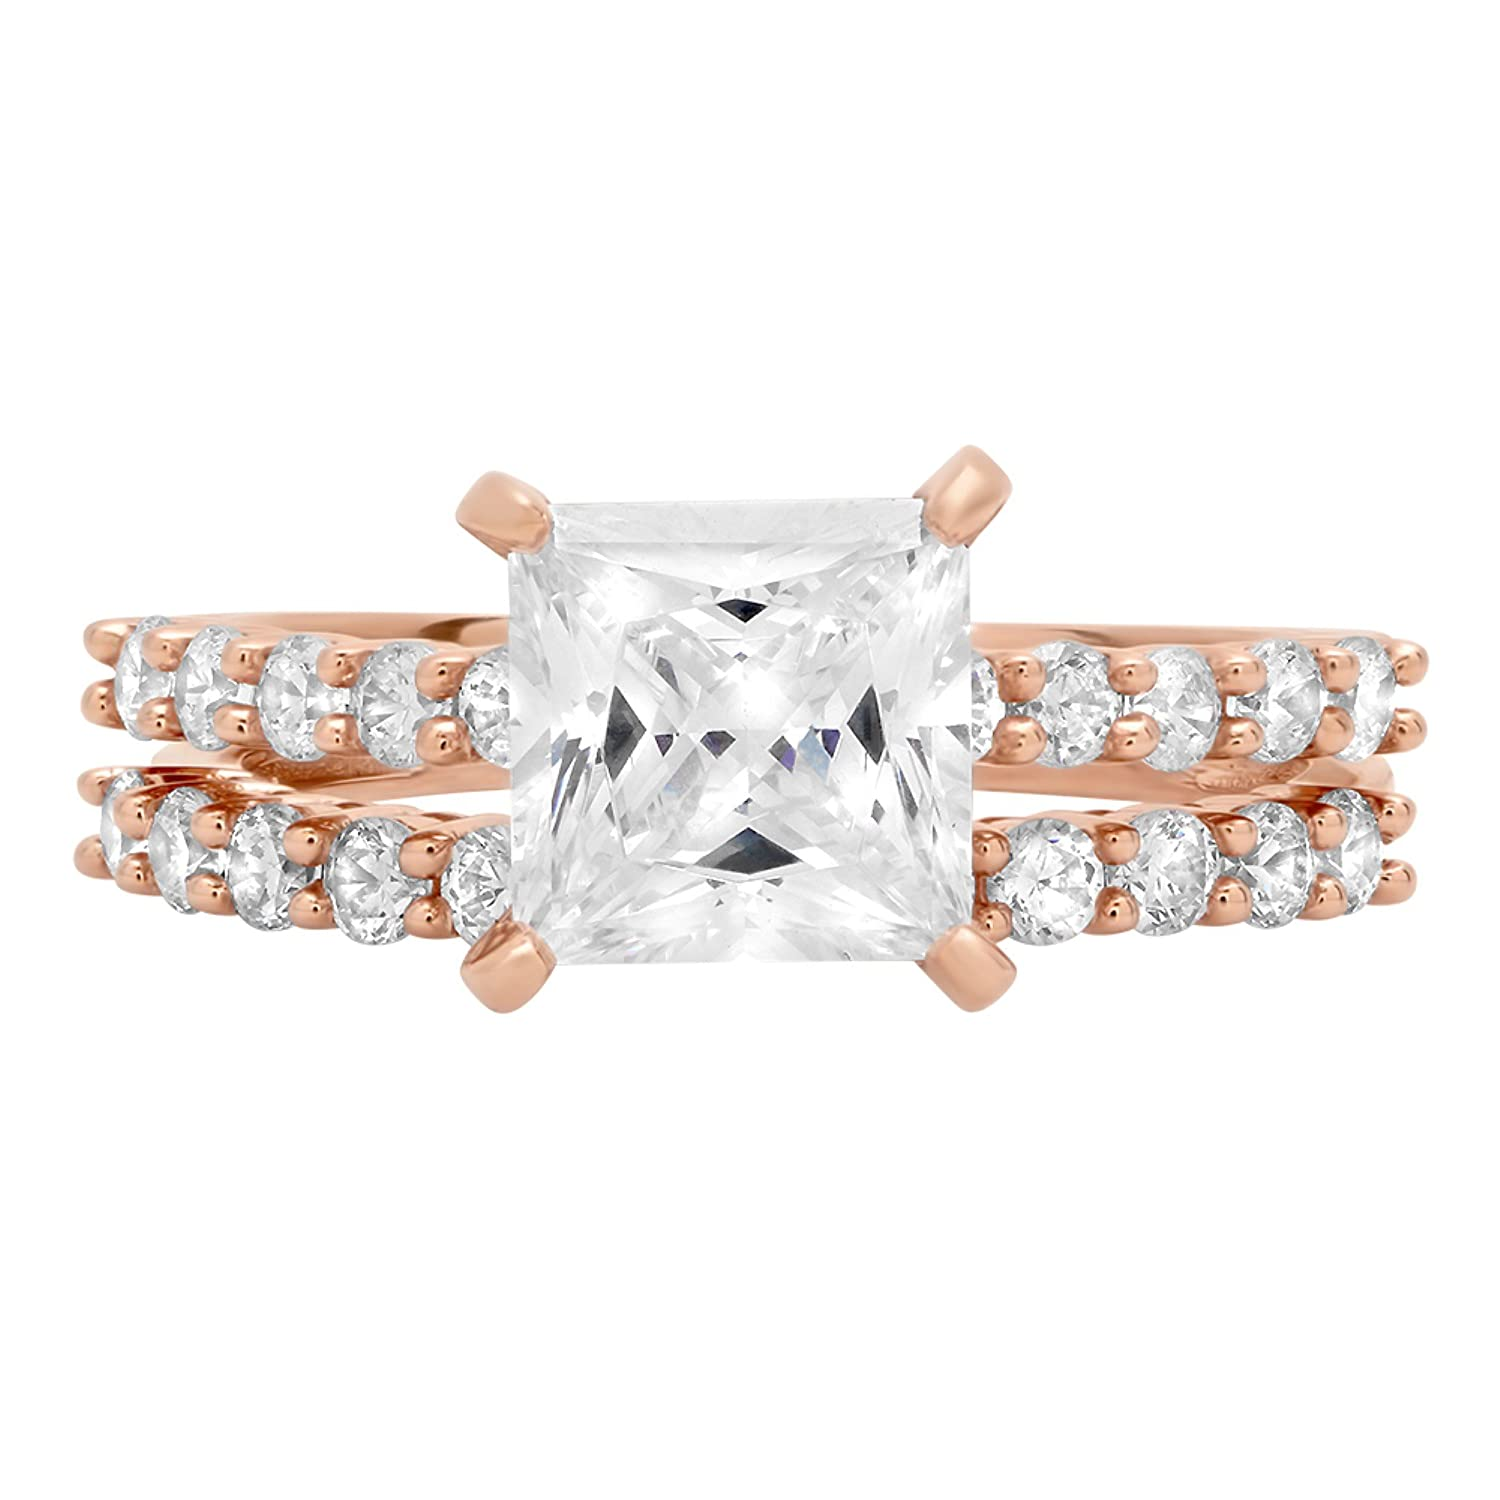 14k Rose Gold 1.47cttw Classic Marquise Solitaire Moissanite Engagement Promise Ideal VVS1 6-Prong Ring Statement Anniversary Bridal Wedding by Clara Pucci